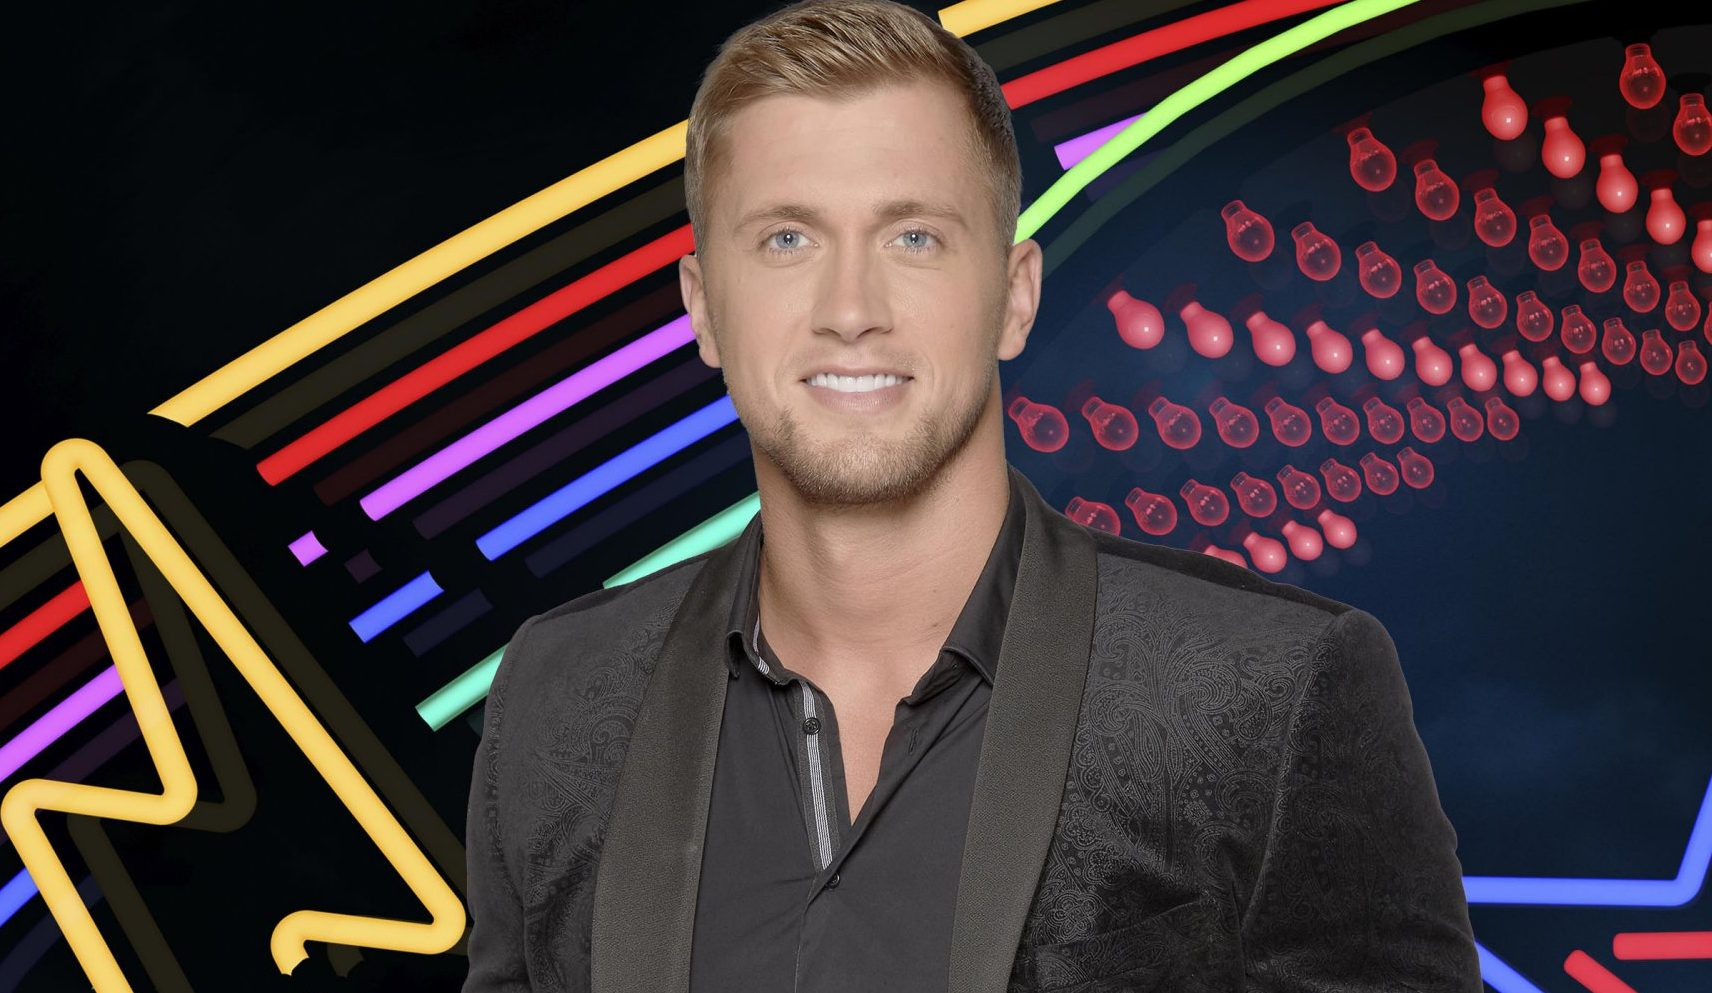 Dan Osborne 'hopes wife Jacqueline Jossa is still talking to him' as he ends Celebrity Big Brother in third place